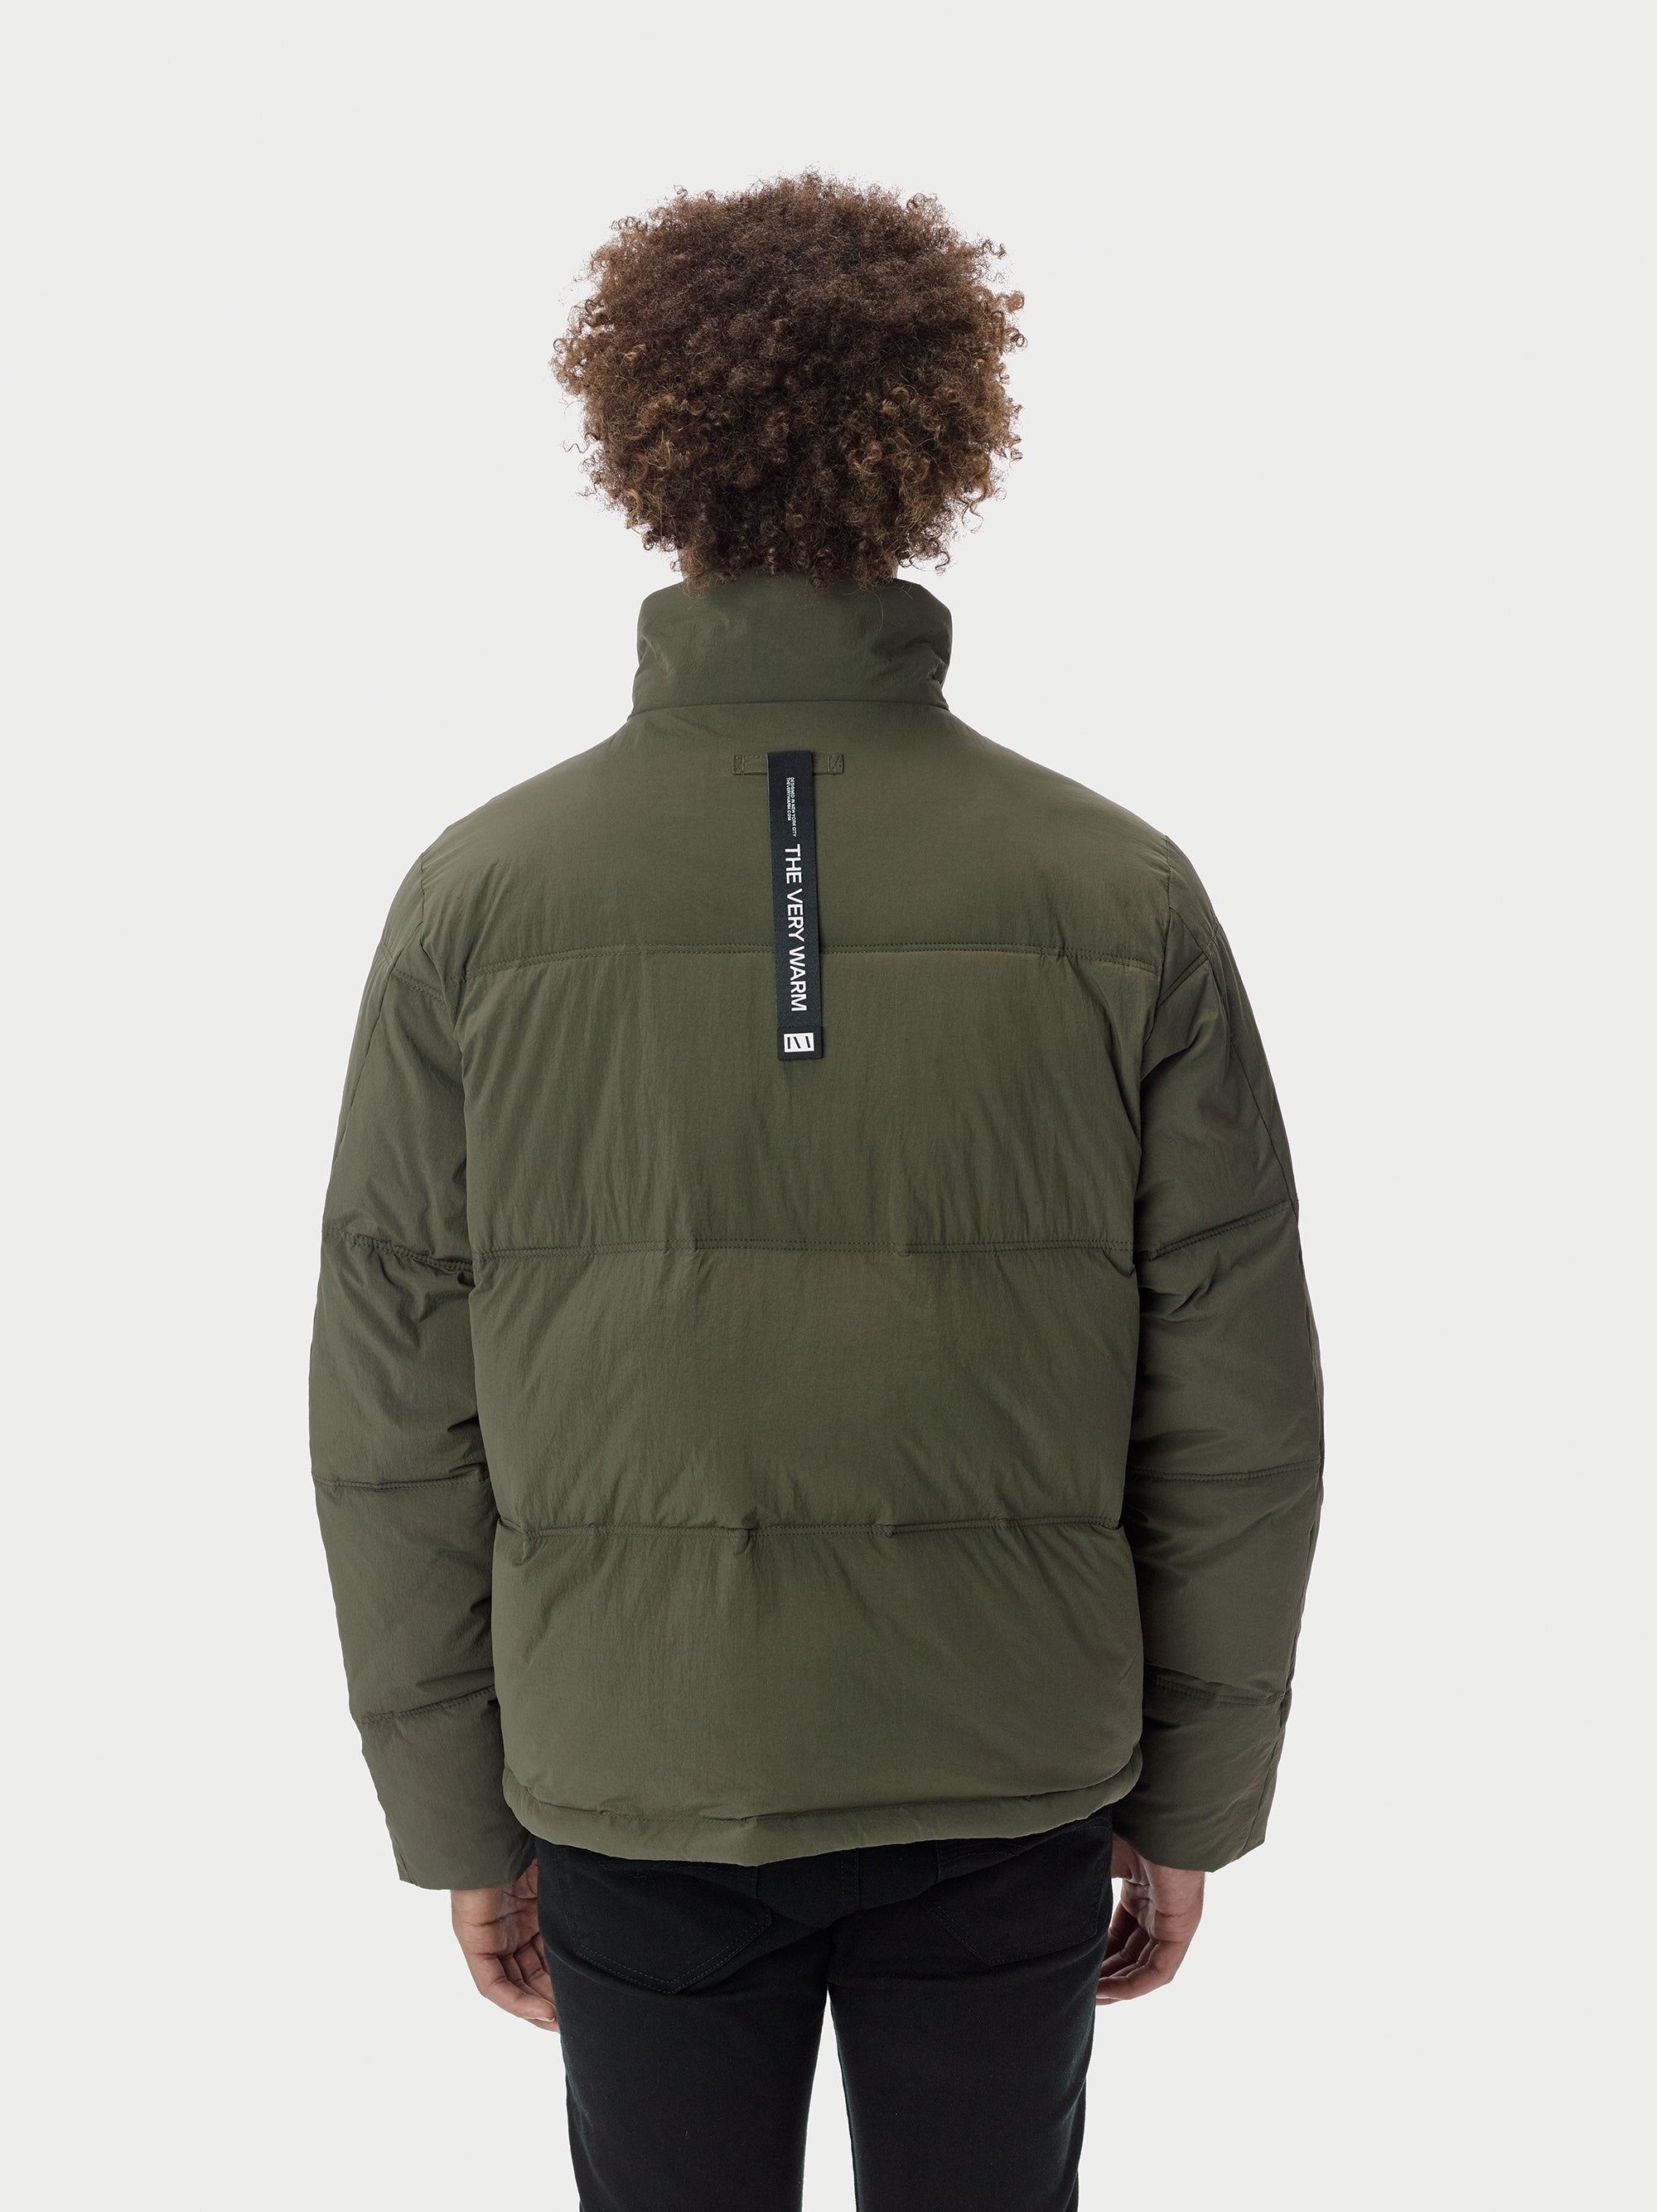 Puffer Puffer Coat - Olive [bomber_Vandal], [The Very Warm], [The Very Warm]